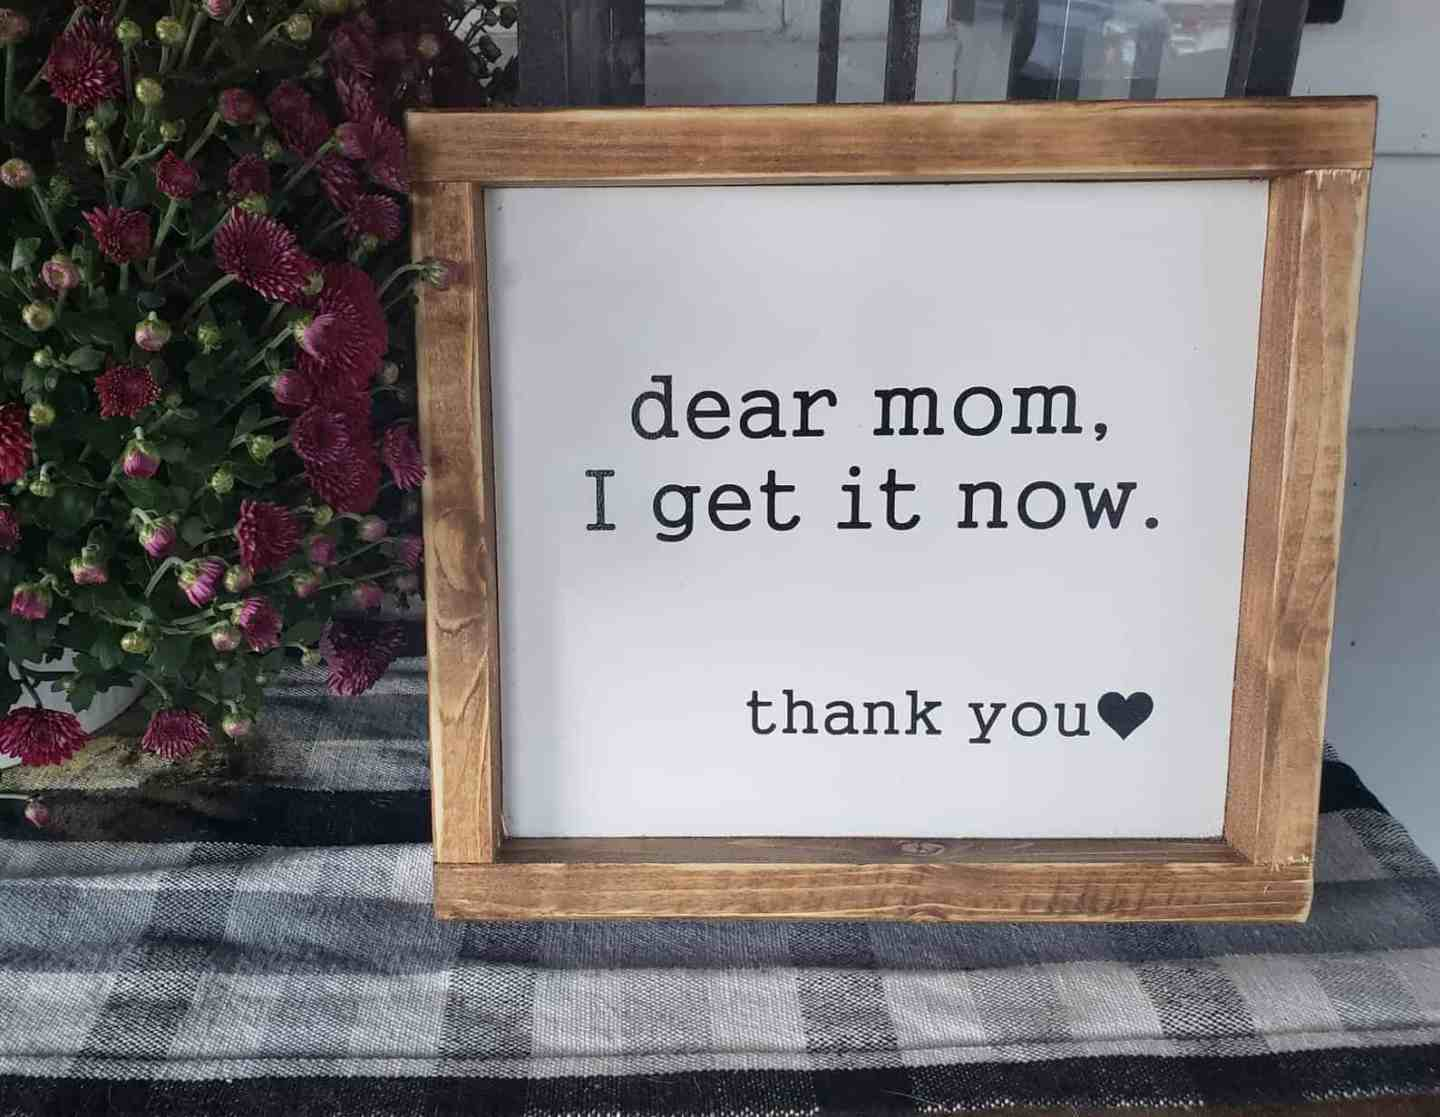 dear-mom-i-get-it-now-mothers-day-gift-idea